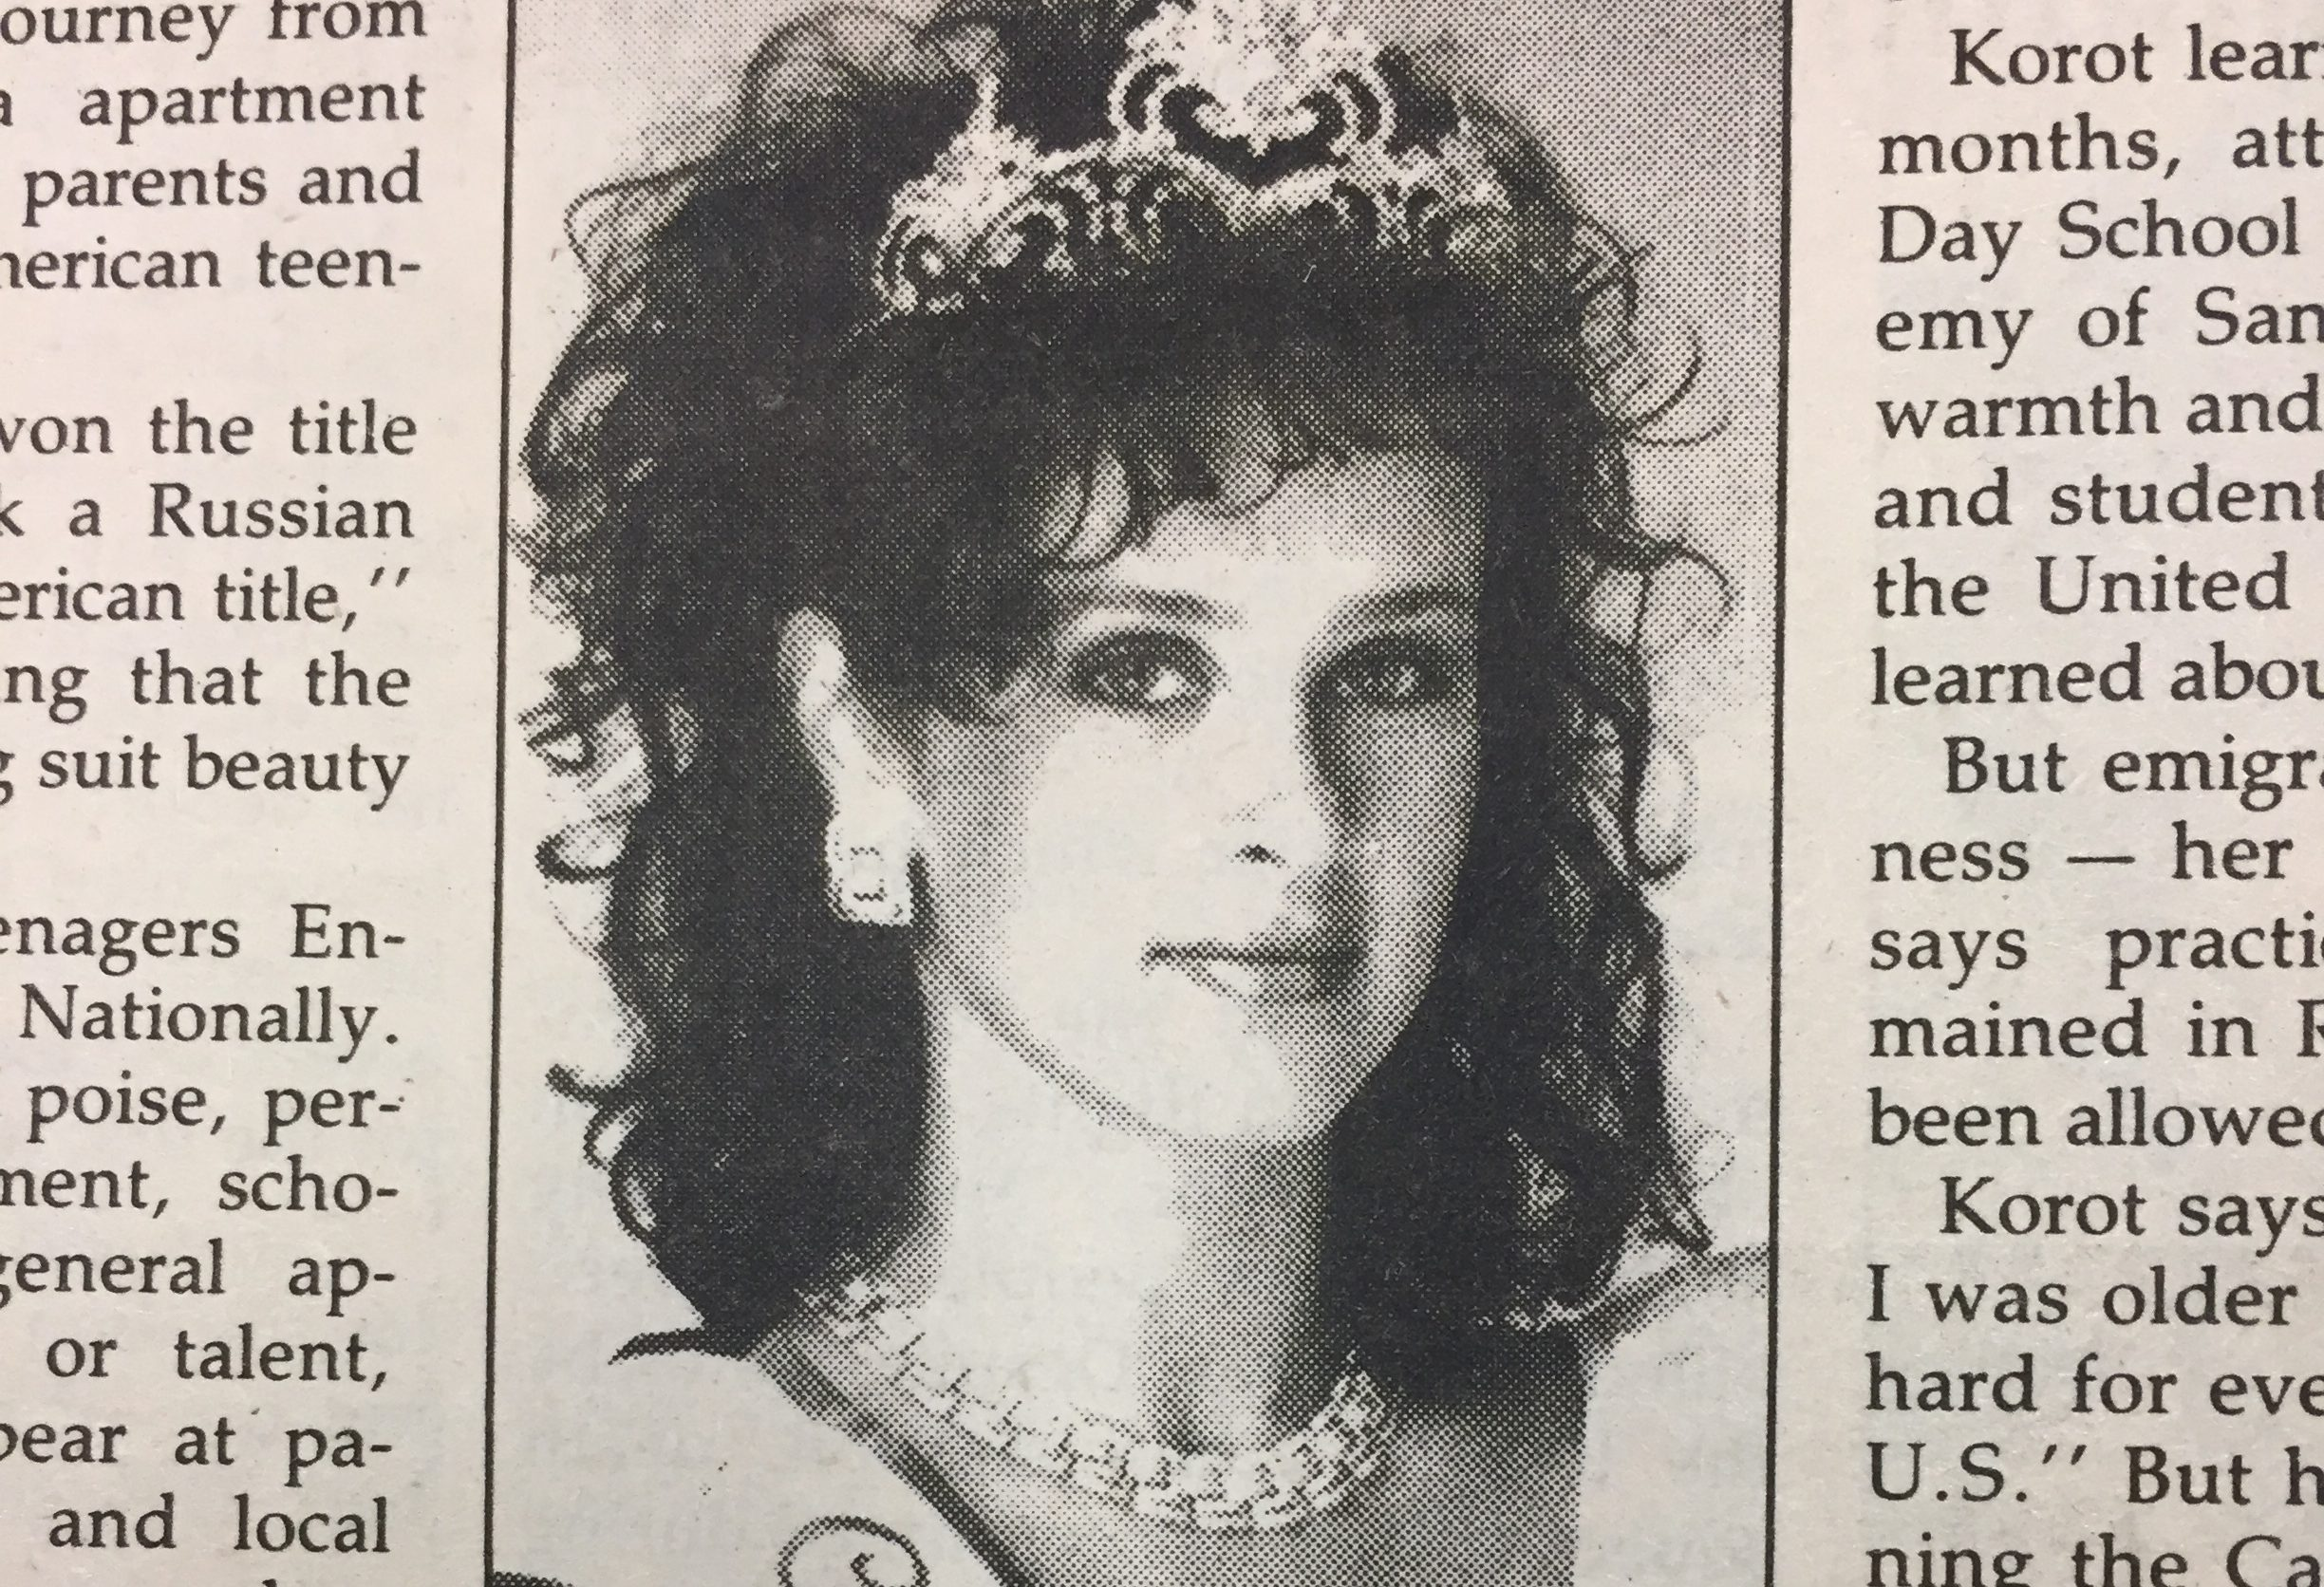 In 1987, the Jewish Bulletin (J.'s previous name) reported on Alla Korot, who won the Miss Teen California pageant that year.